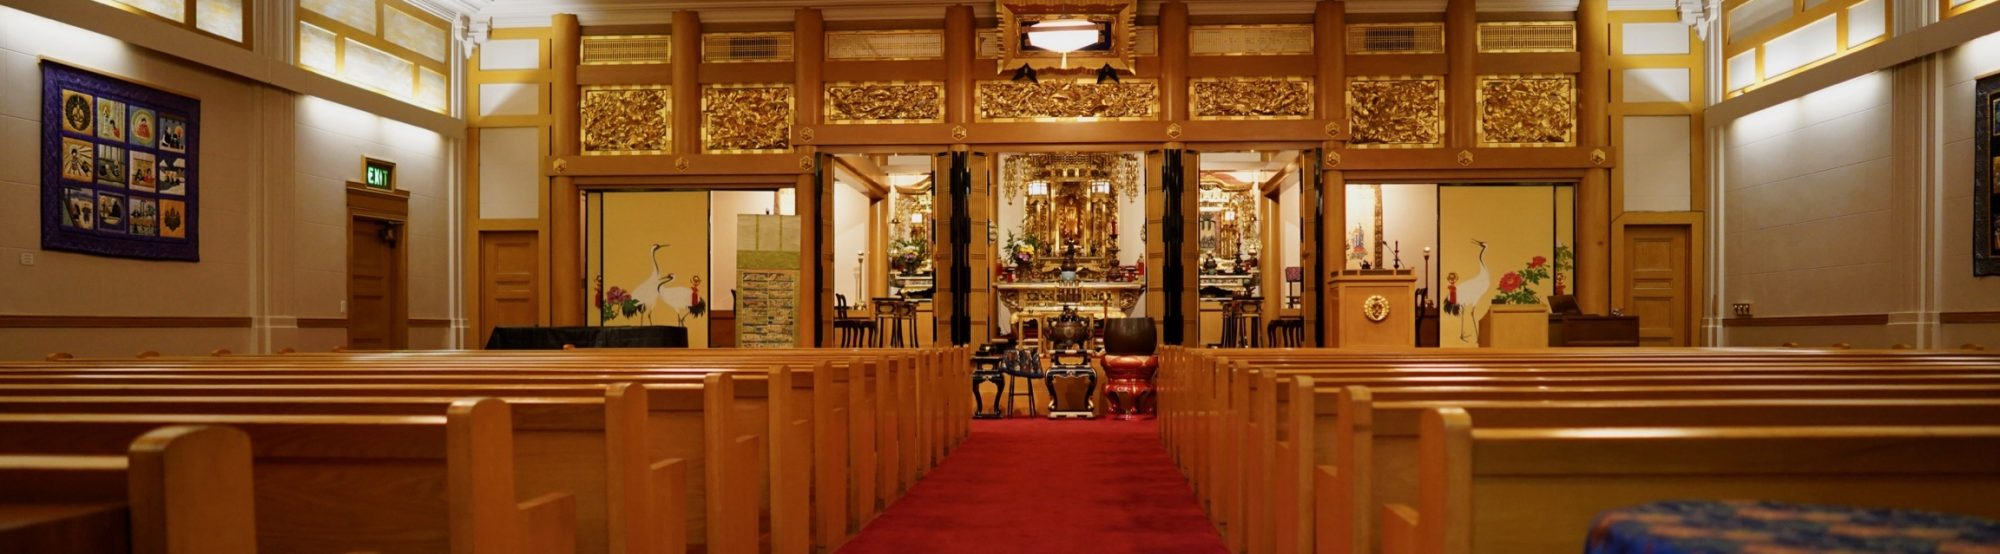 Seattle Betsuin Buddhist Temple